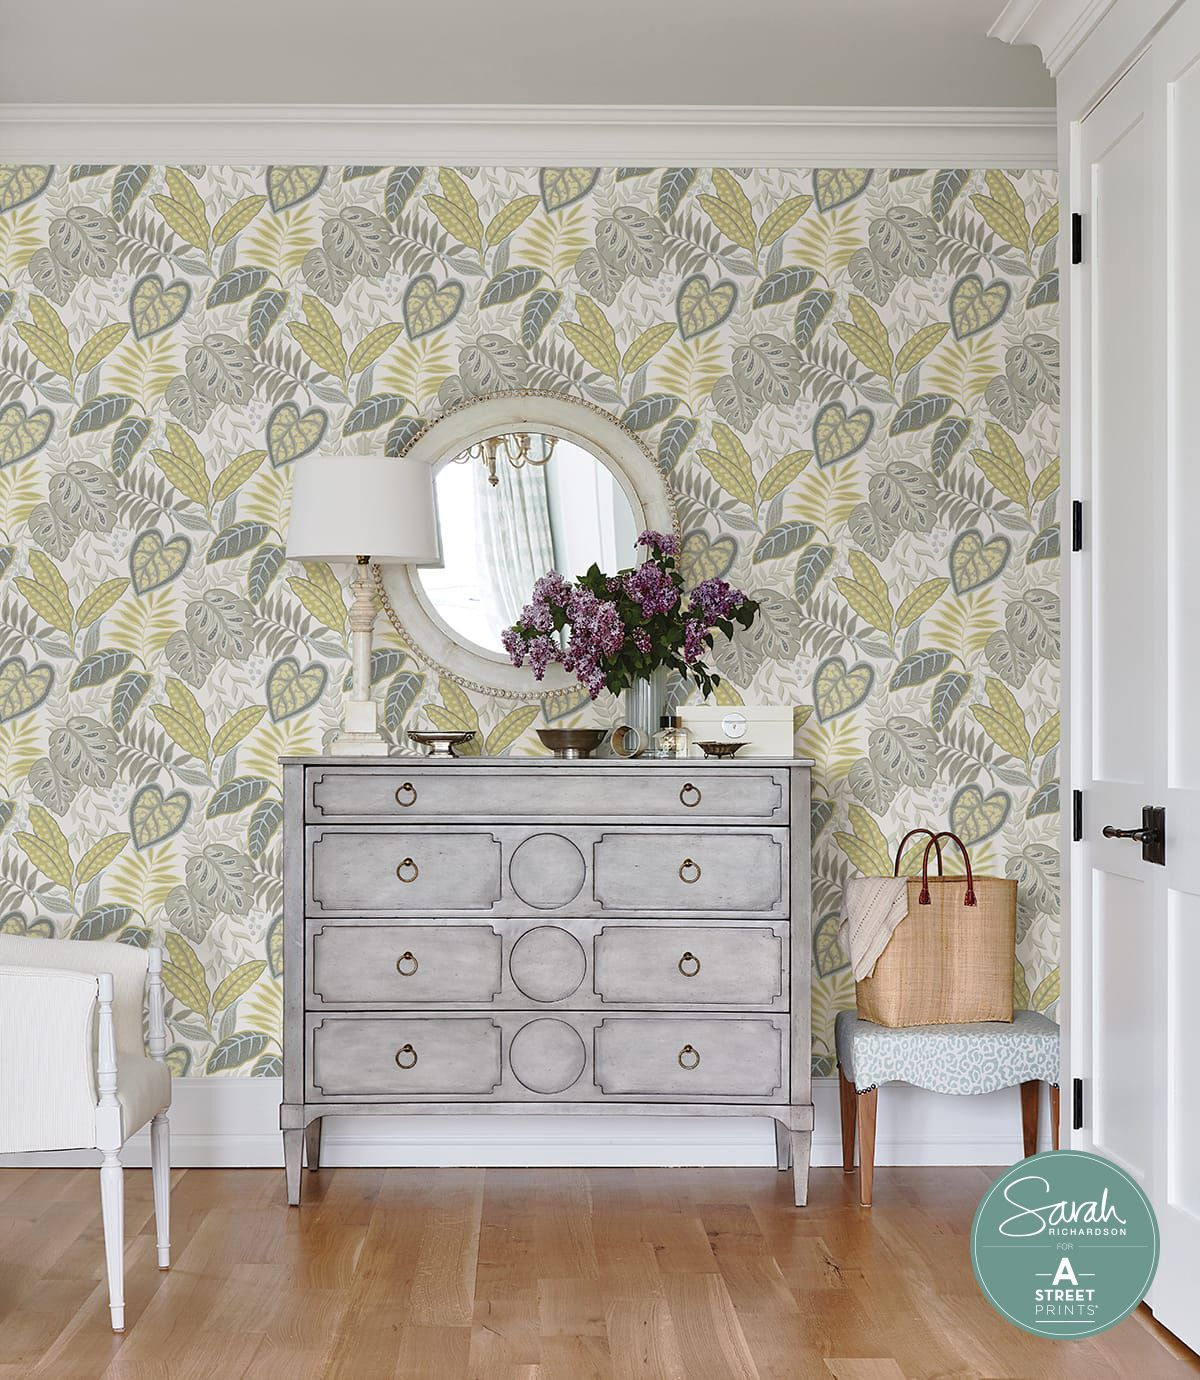 Lelands Interiors Founded In 1981 Located In Arlington Tx In 2020 Home Town Hgtv Wallpaper Decorating Sites